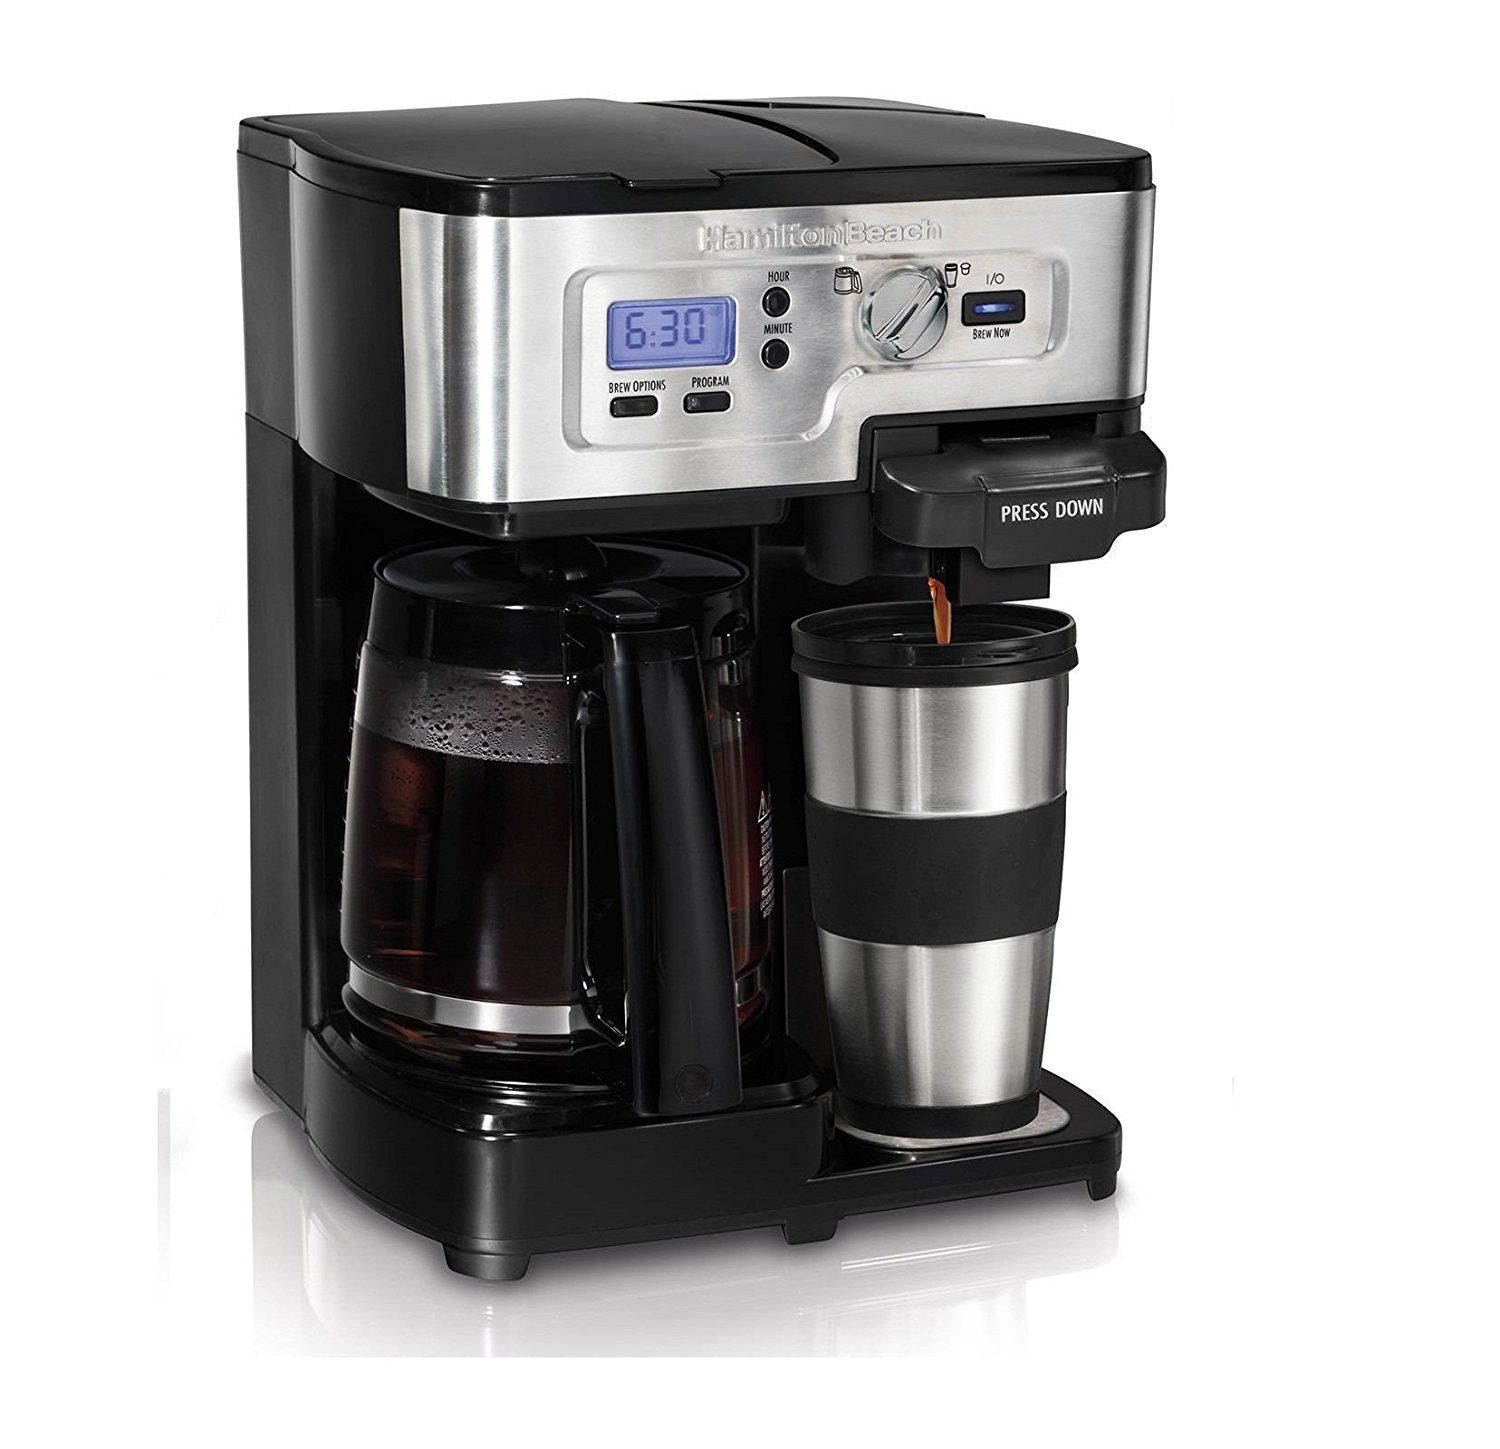 Hamilton Beach 2Way FlexBrew Digital 112 Cup Coffeemaker